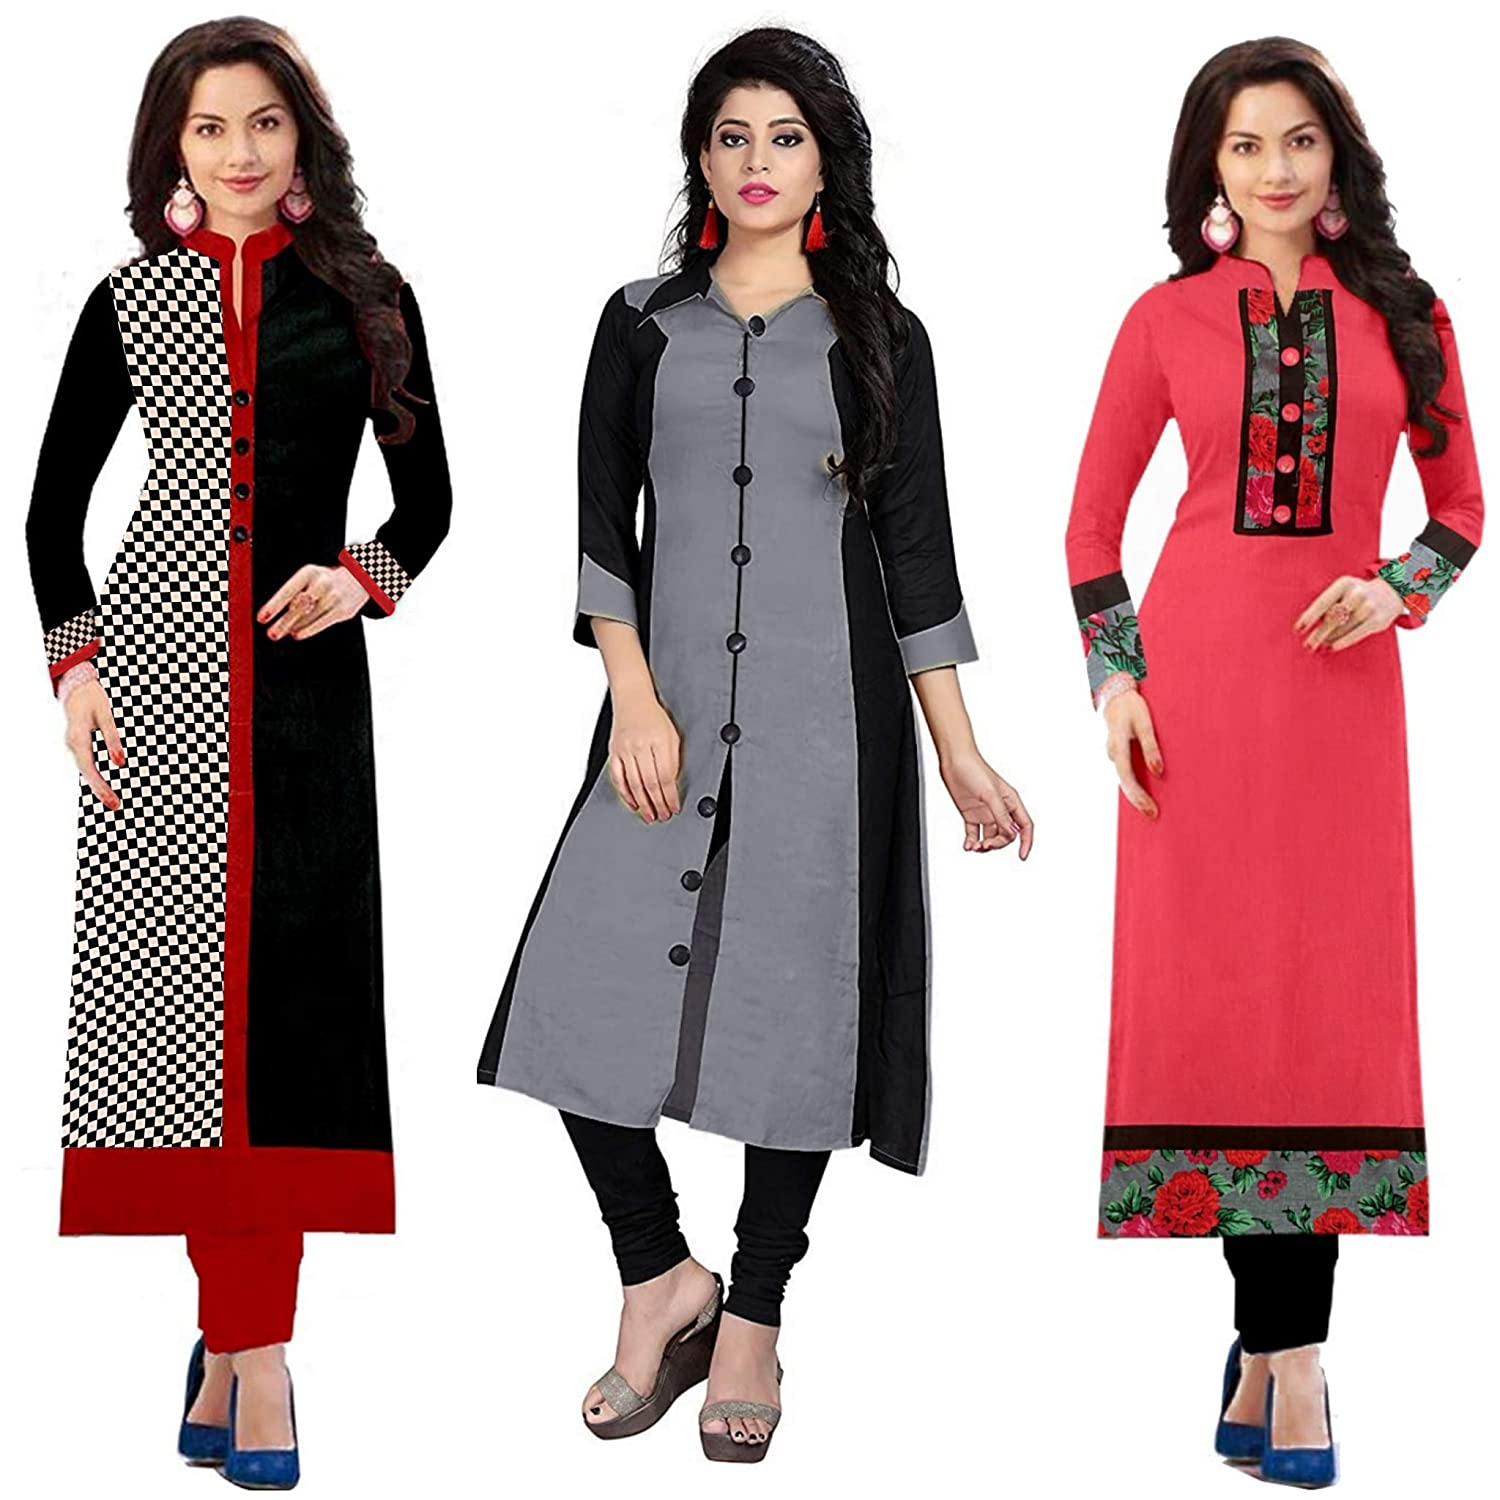 LOOT FAST RAMDEV Women's Cotton Semi- Stitched Kurti (Multicolour,Free Size) Pack of 3 at only 799 MRP 3289